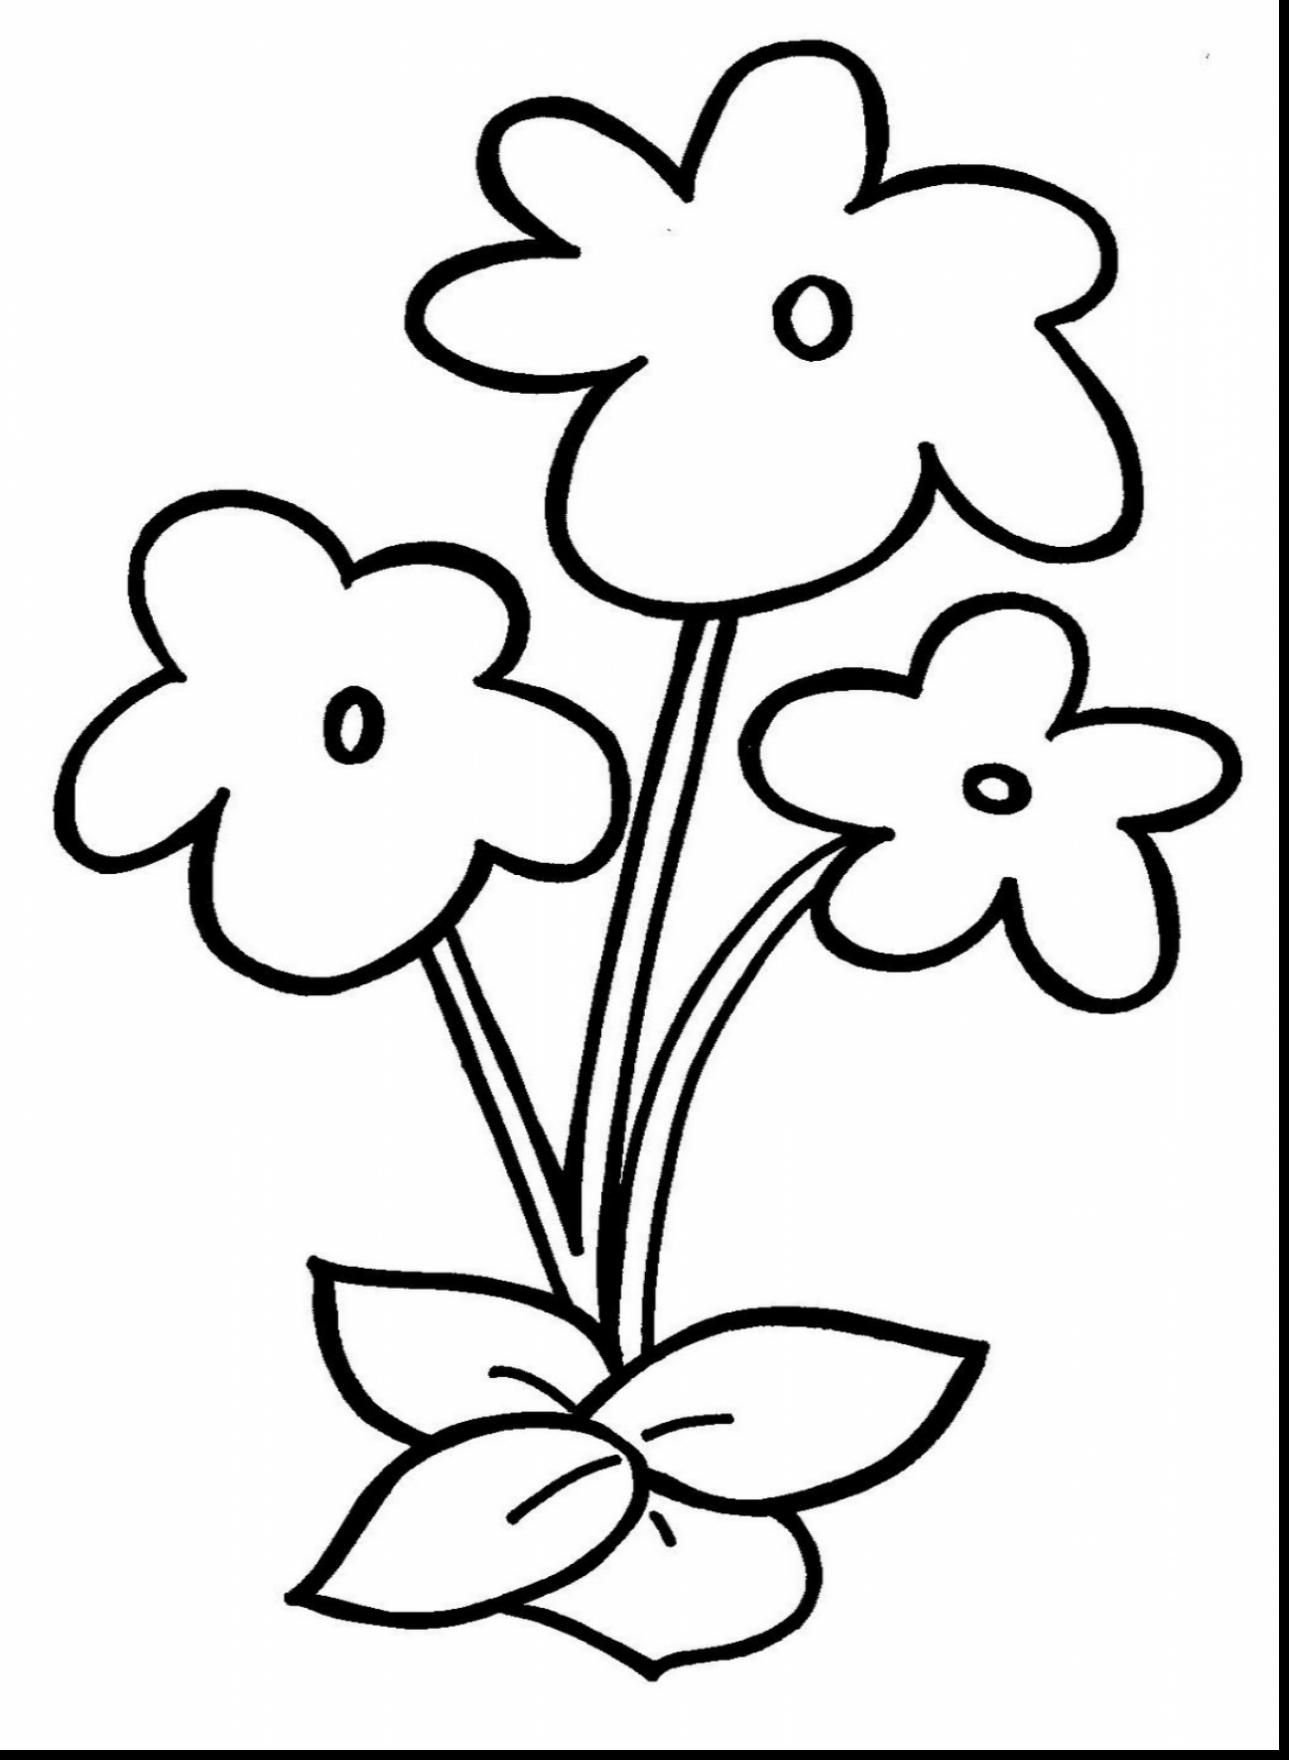 free printable flowers to color flower coloring printables for kids to color printable flowers free